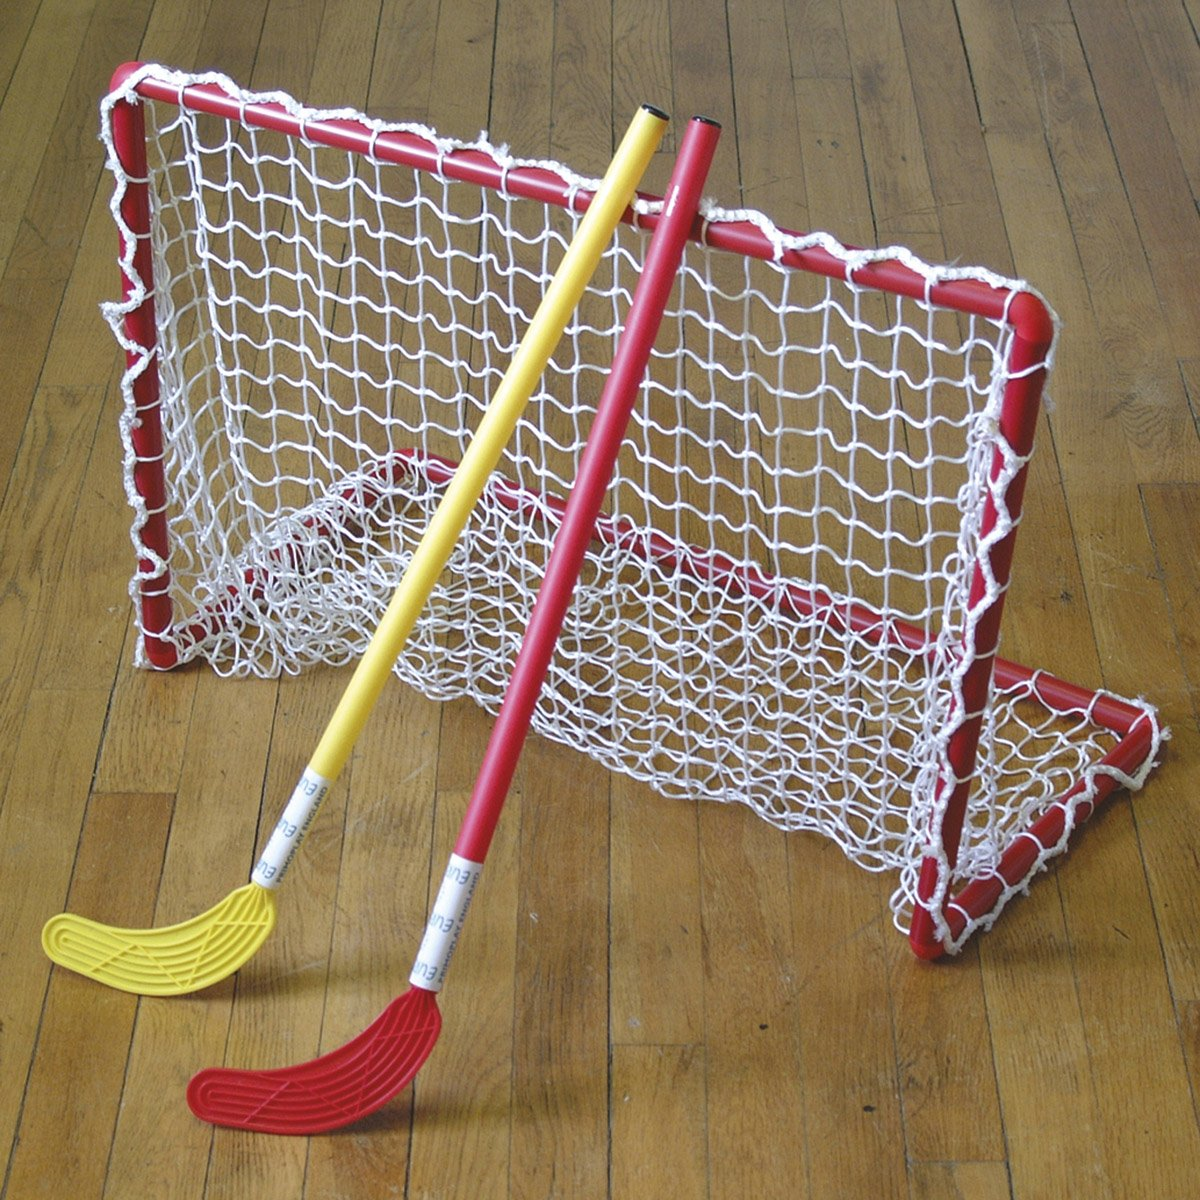 2 x Eurohoc Plastic Goals With Nets and Carry Bag 90cm x 60cm x 45cm rrp£105